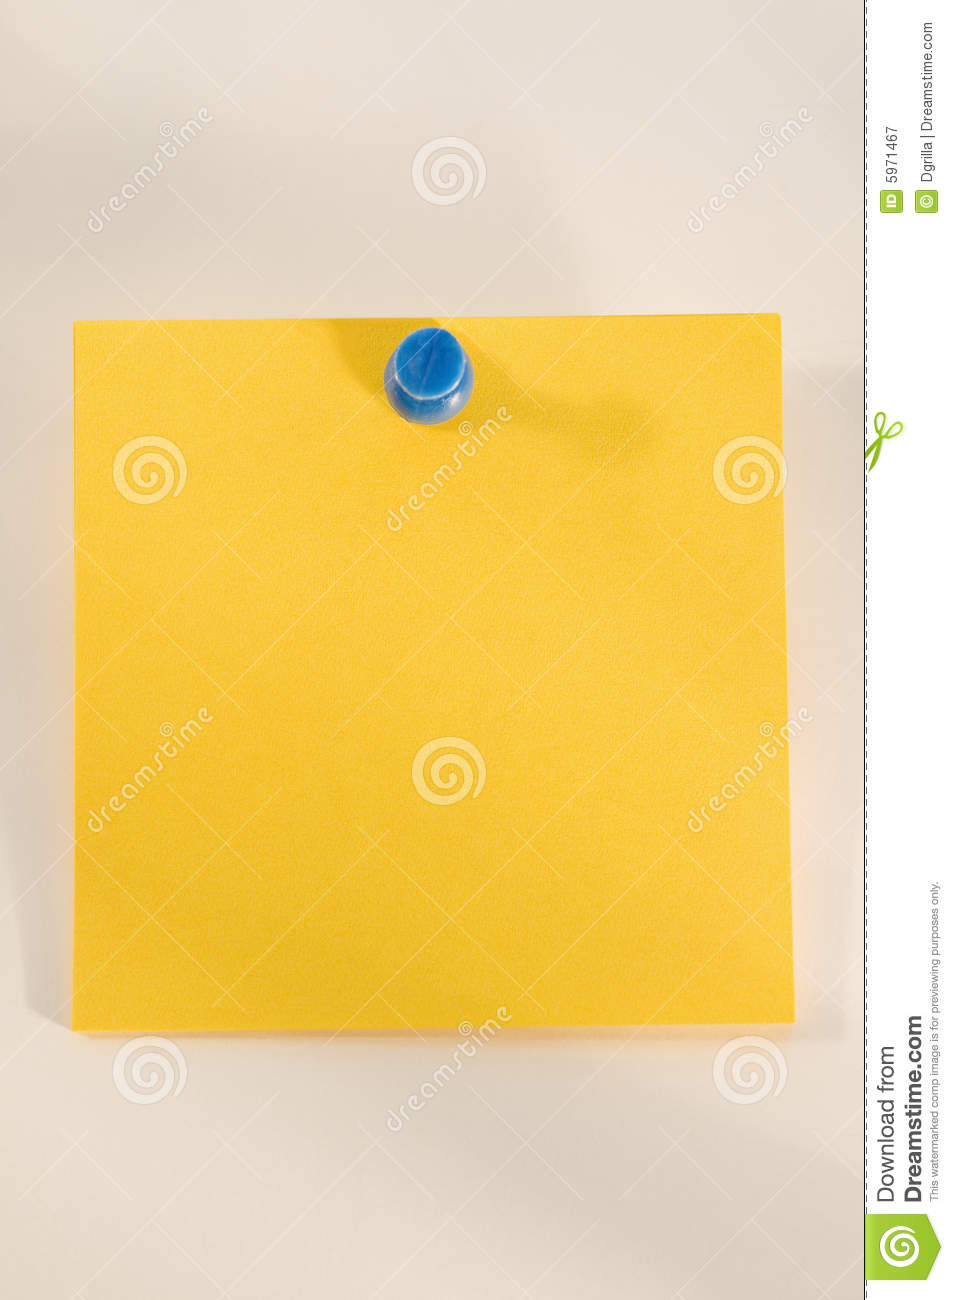 Yellow Sticky Note With Thumbtack Royalty Free Stock ...